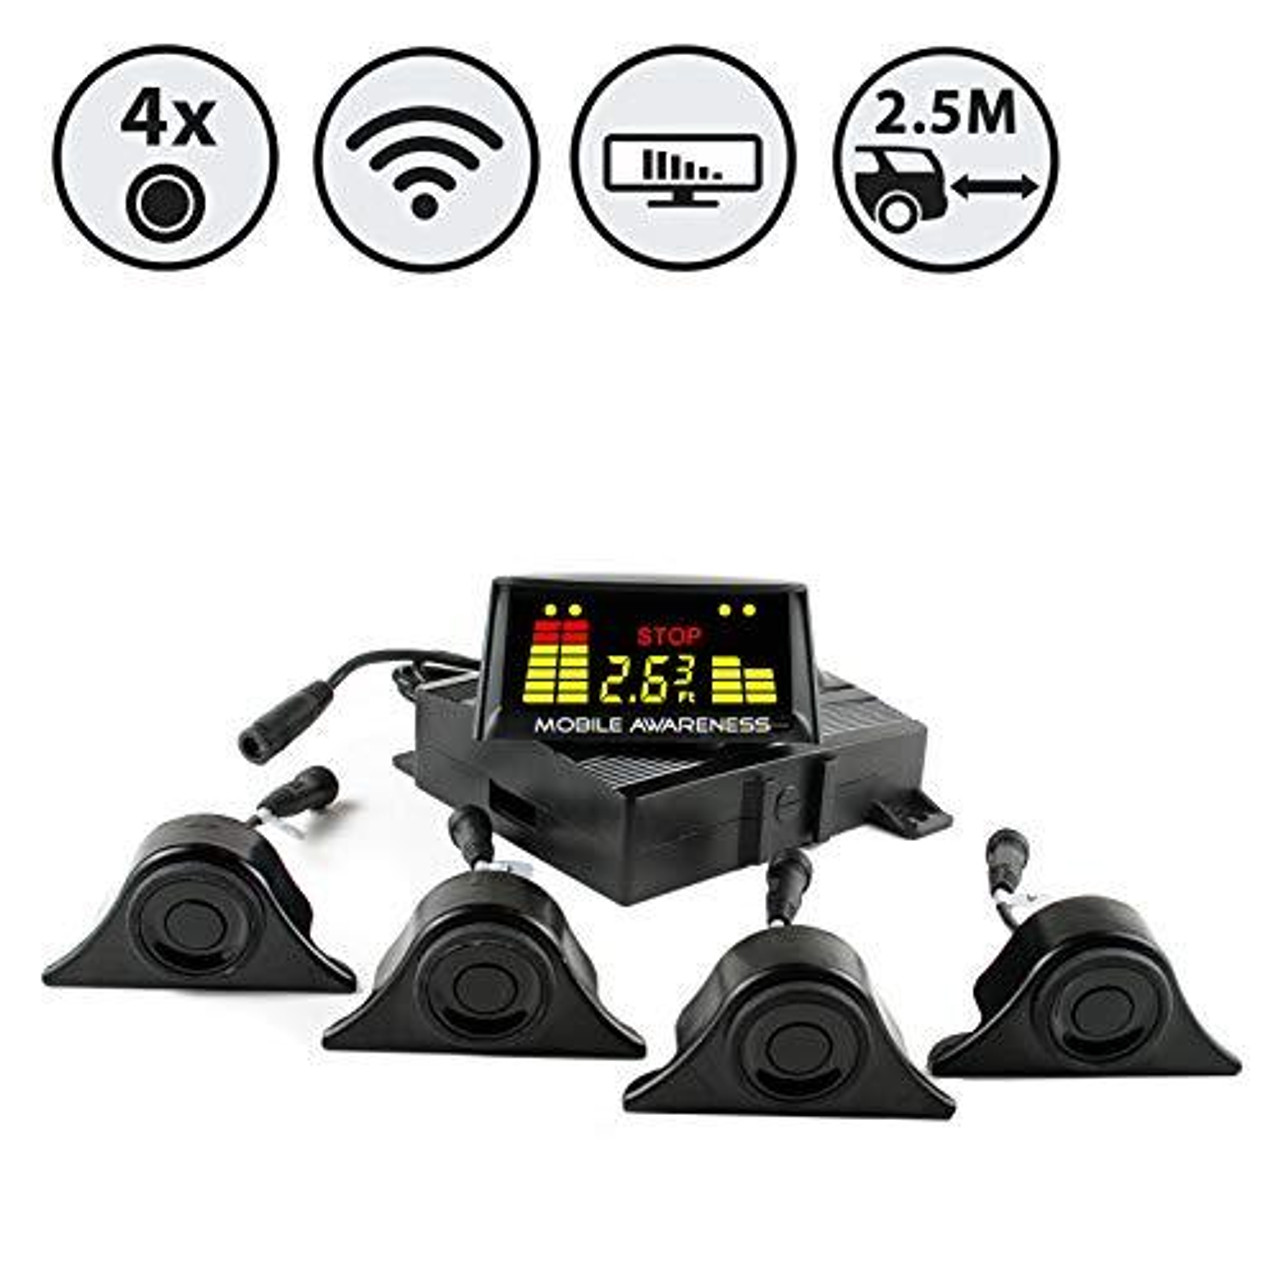 Rear View Safety SenseStat Wireless Obstacle Detection System - Perfect for Trucks, Trailers and Fifth Wheels (Standar Mount)